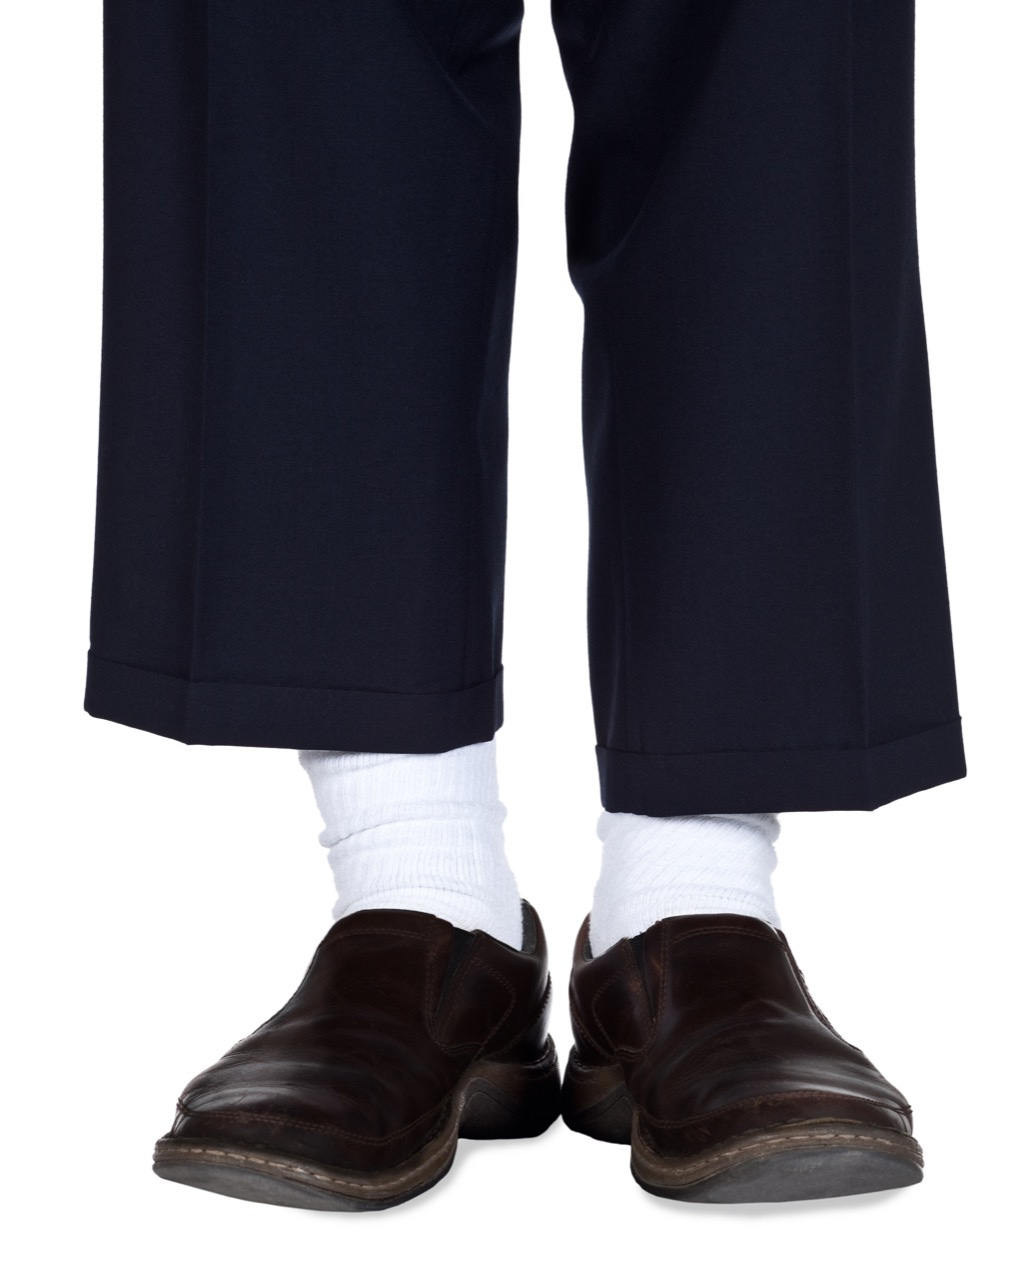 white socks and dress pants are something no man should wear to work